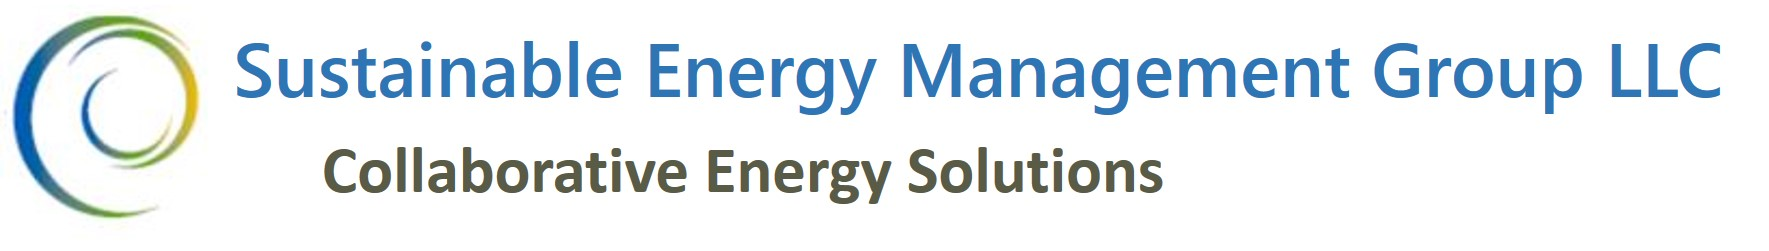 Sustainable Energy Management Group LLc